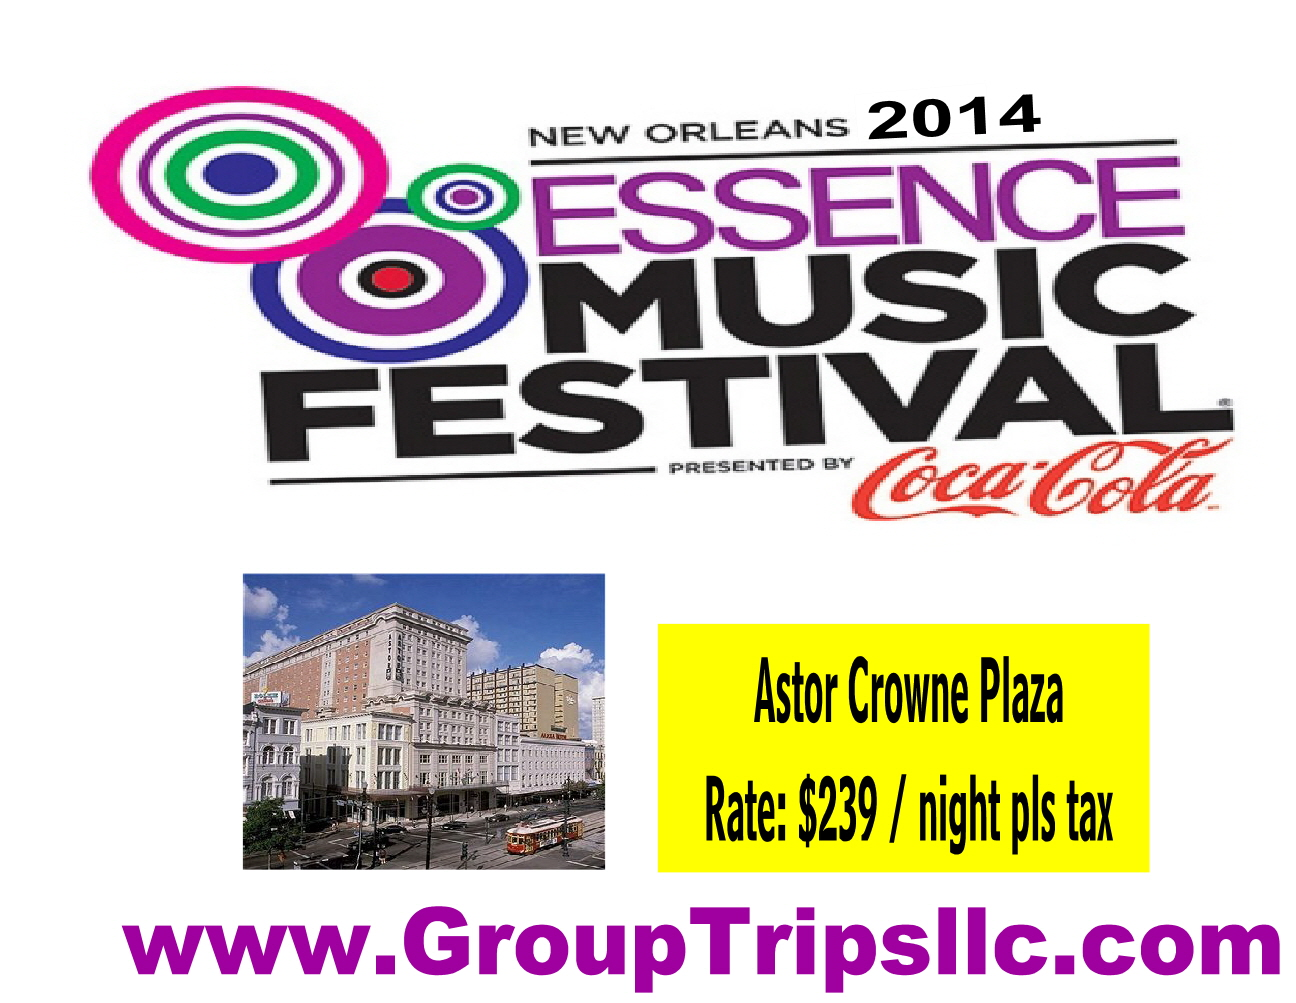 Essence Music Festival 2014 New Orleans Astor Crowne Plaza Discount $